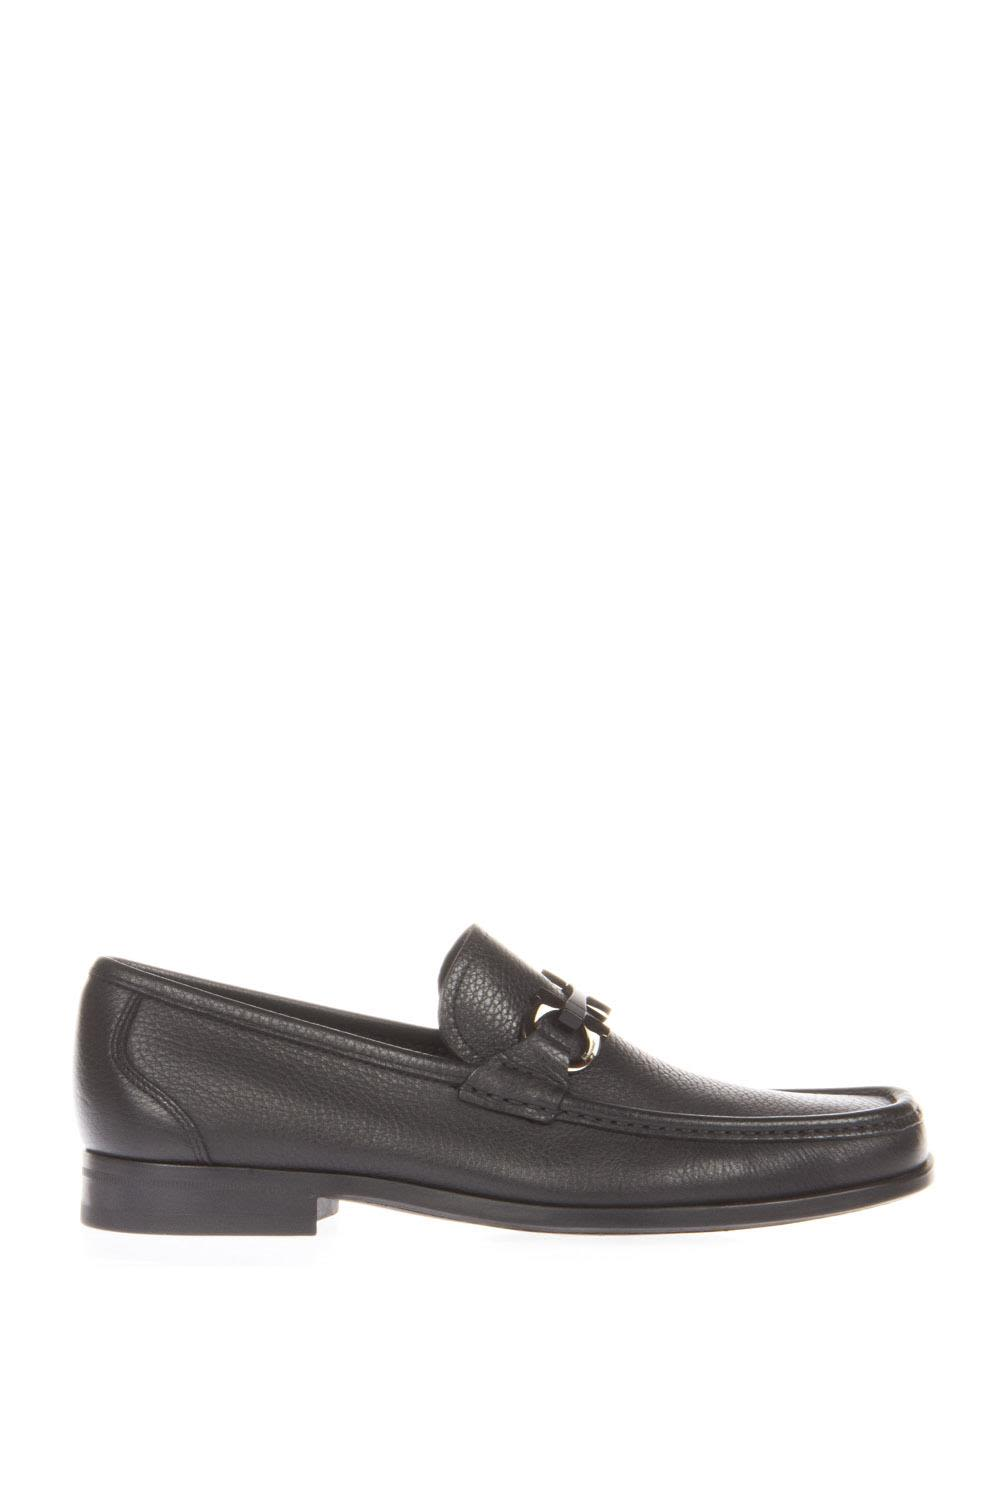 Salvatore Ferragamo Horsebit Leather Loafers